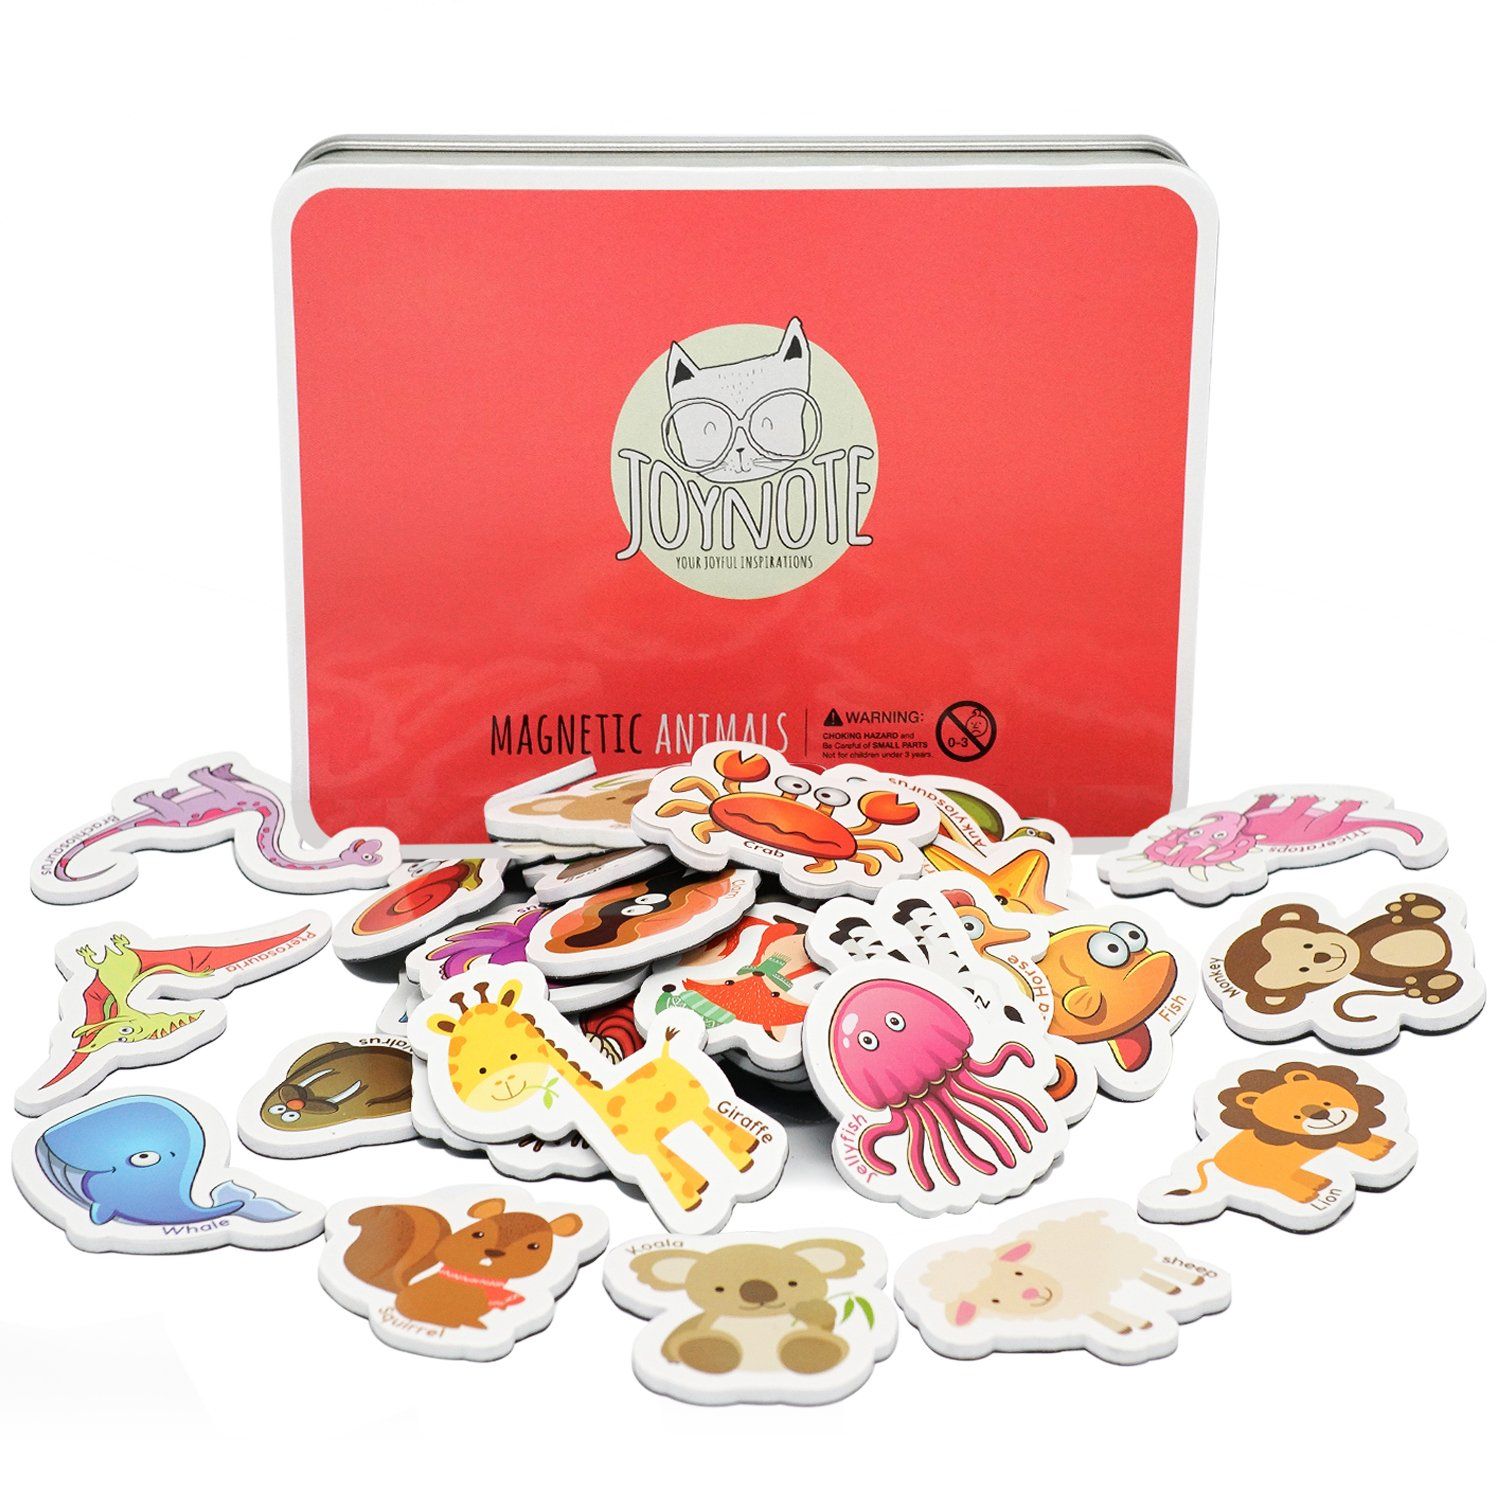 JOYNOTE Magnetic Animals for Kids, Cute Refrigerator Magnets Animals Education Set with Wild,Zoo,Farm,Sea Dinosaur Shape,Jungle Toddlers Magnetism Learning Toys (40 pcs in Iron Box)